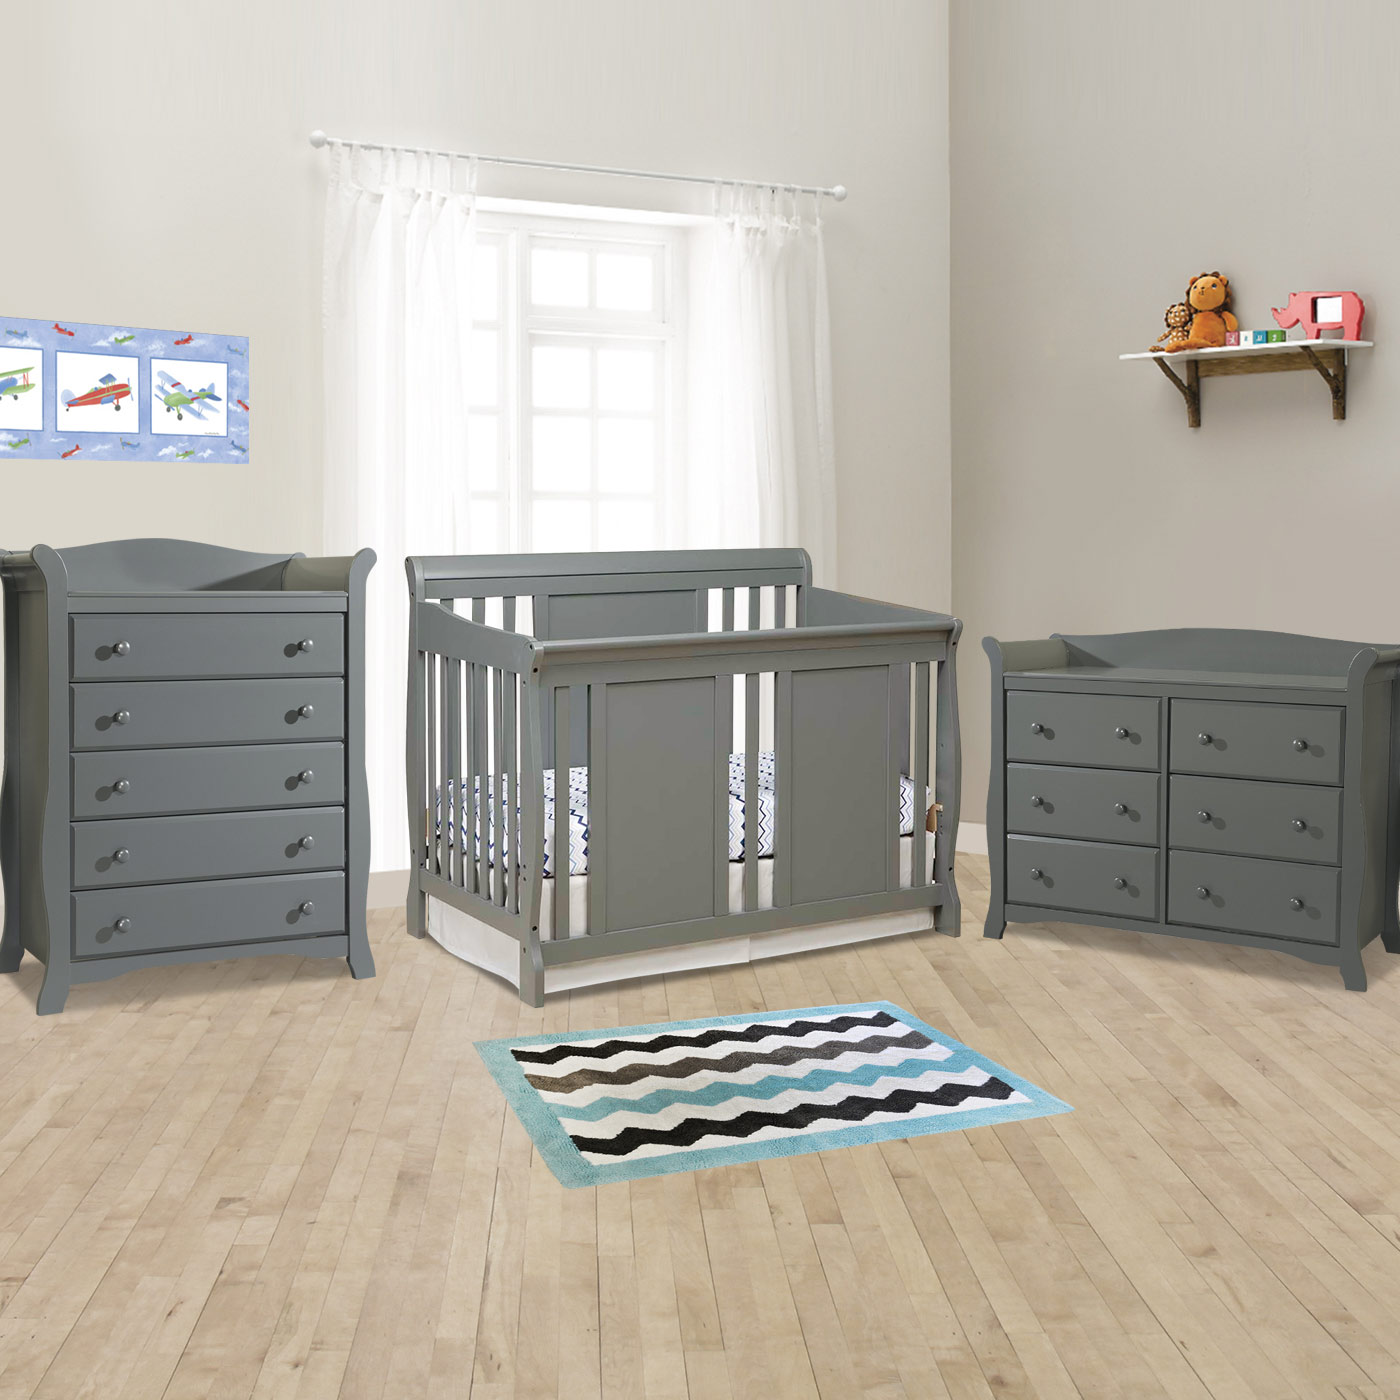 Storkcraft 3 Piece Nursery Set Verona Convertible Crib Avalon 5 Drawer Dresser And 6 In White Free Shipping